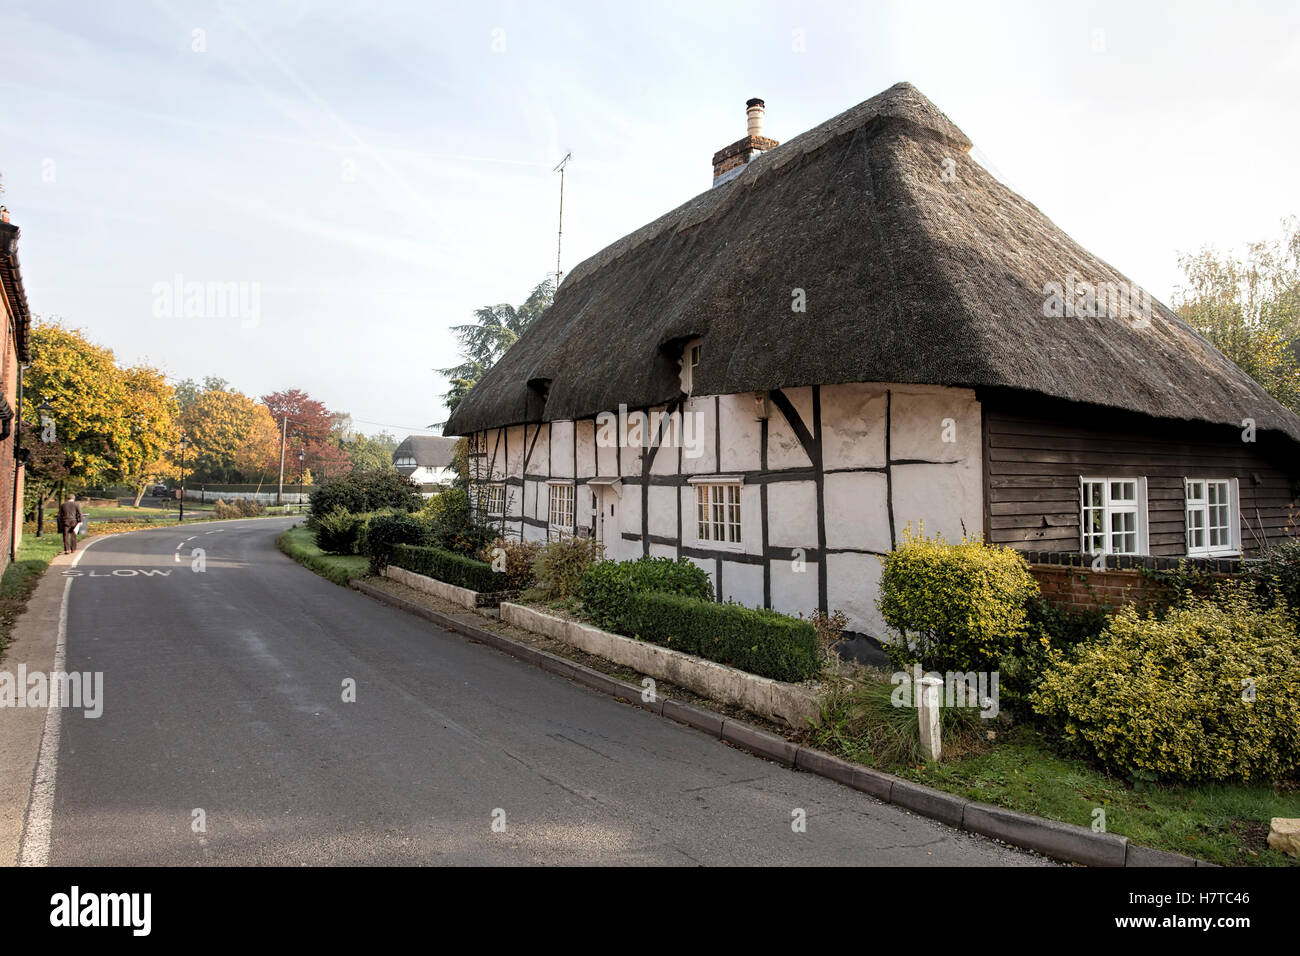 Thatched cottage in the Hampshire village of Kings Somborne, England uk - Stock Image